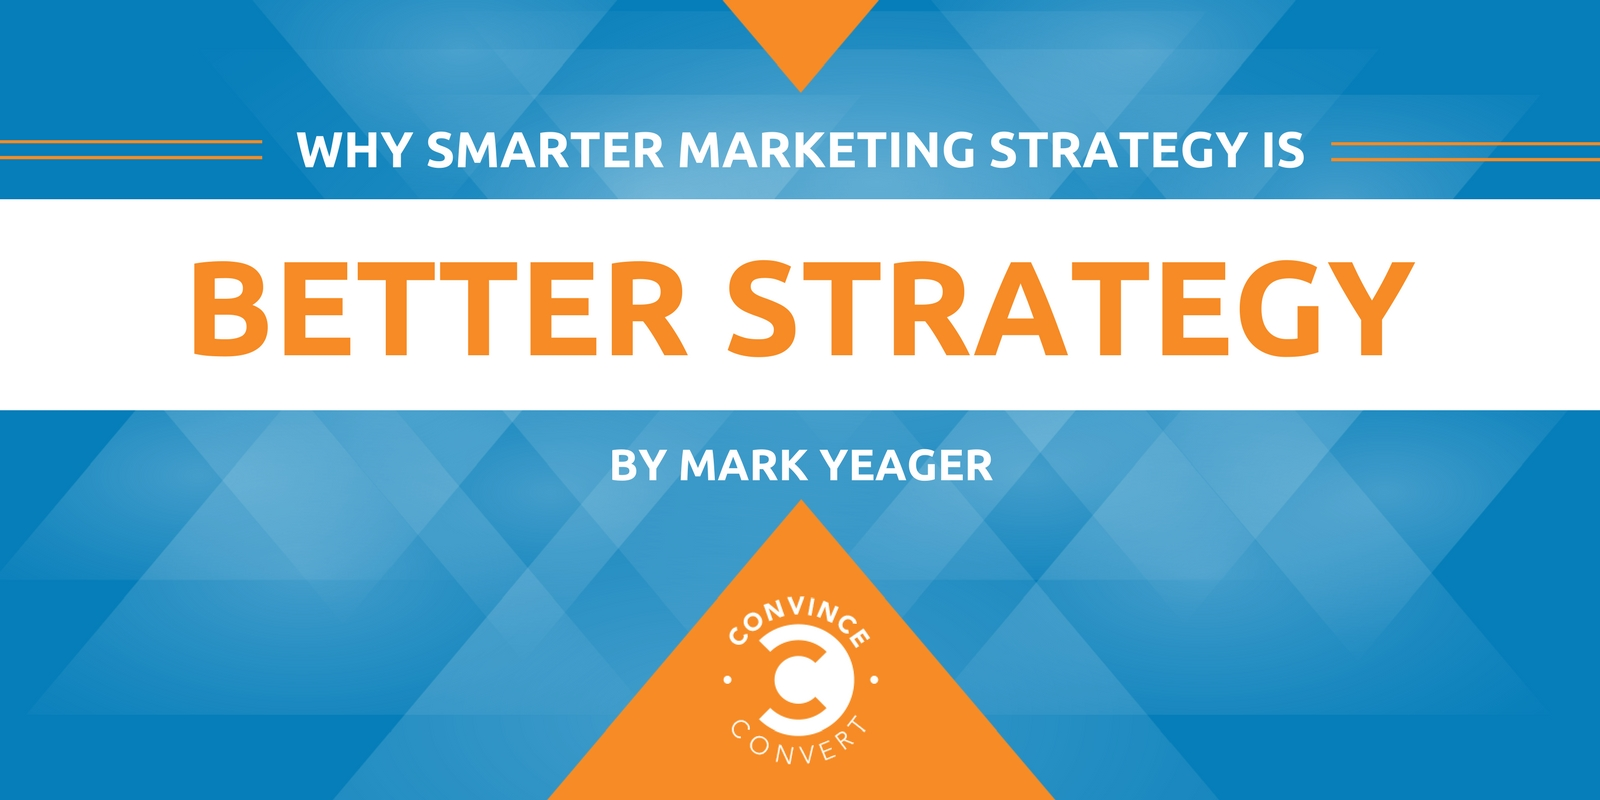 Why Smarter Marketing Strategy Is Better Strategy